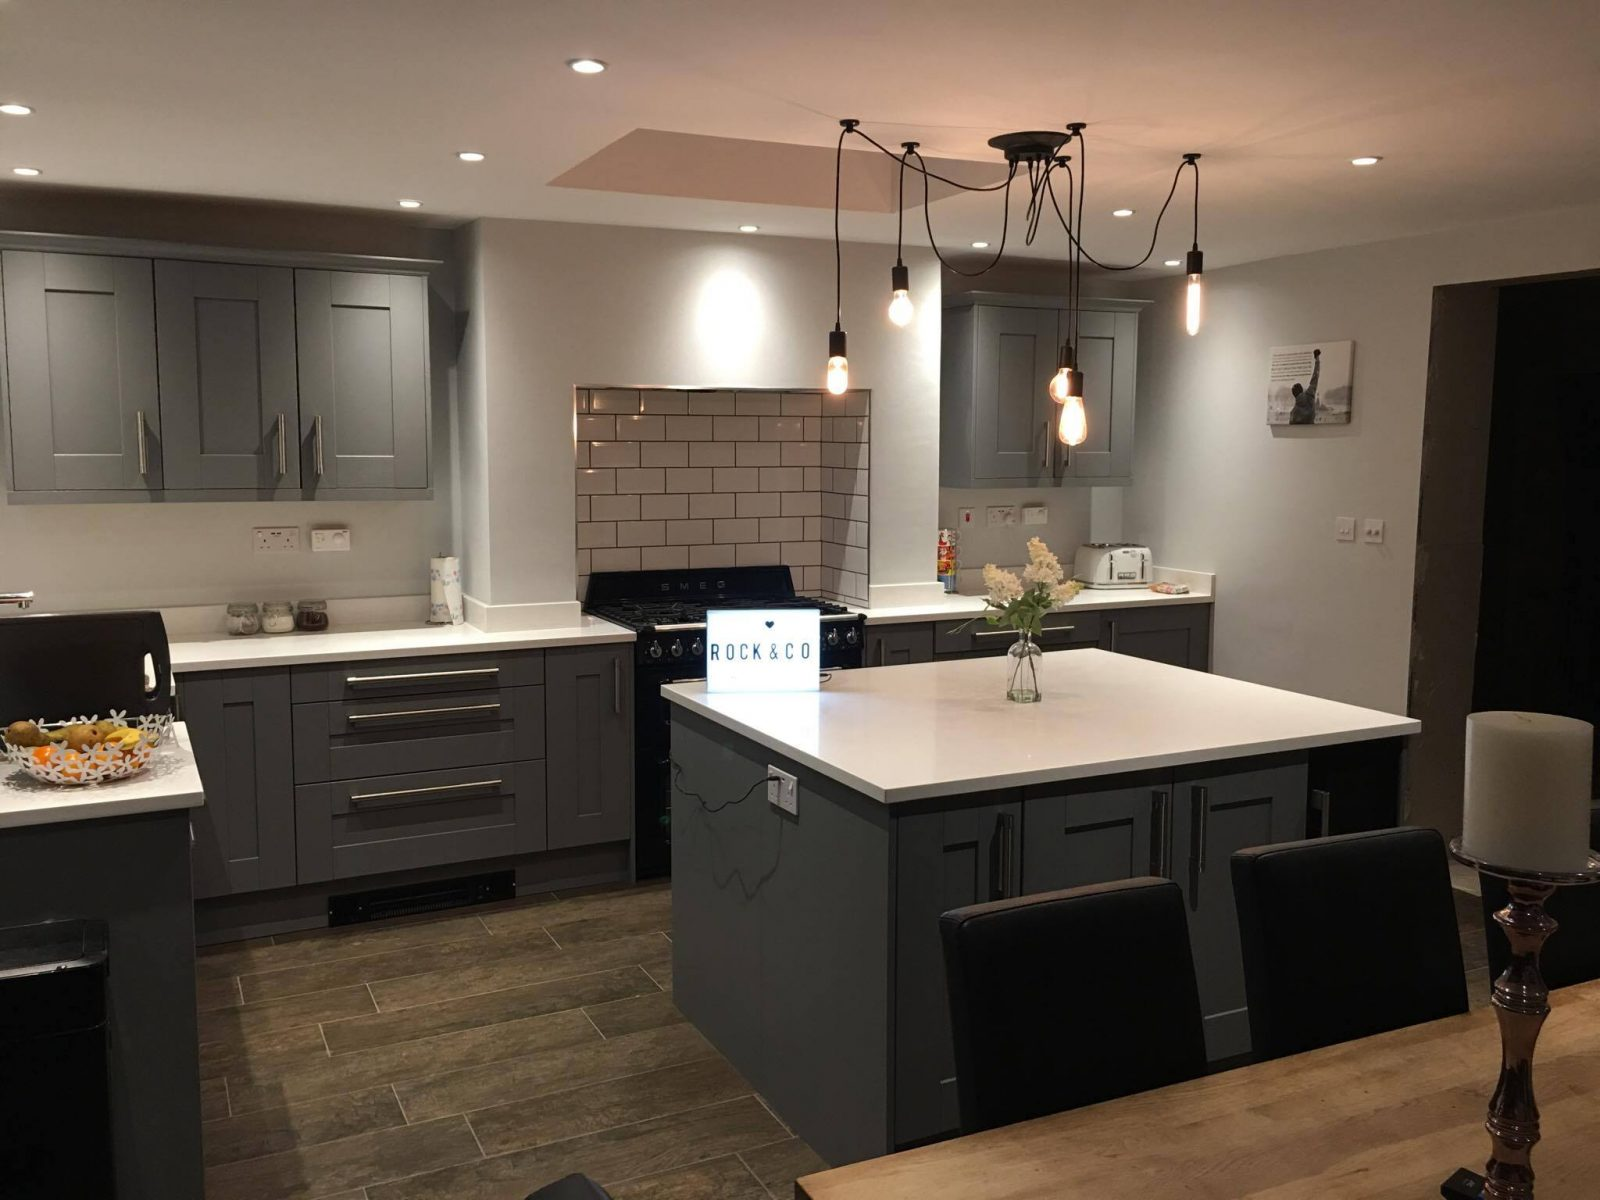 Save space and warm up your kitchen with a plinth heater